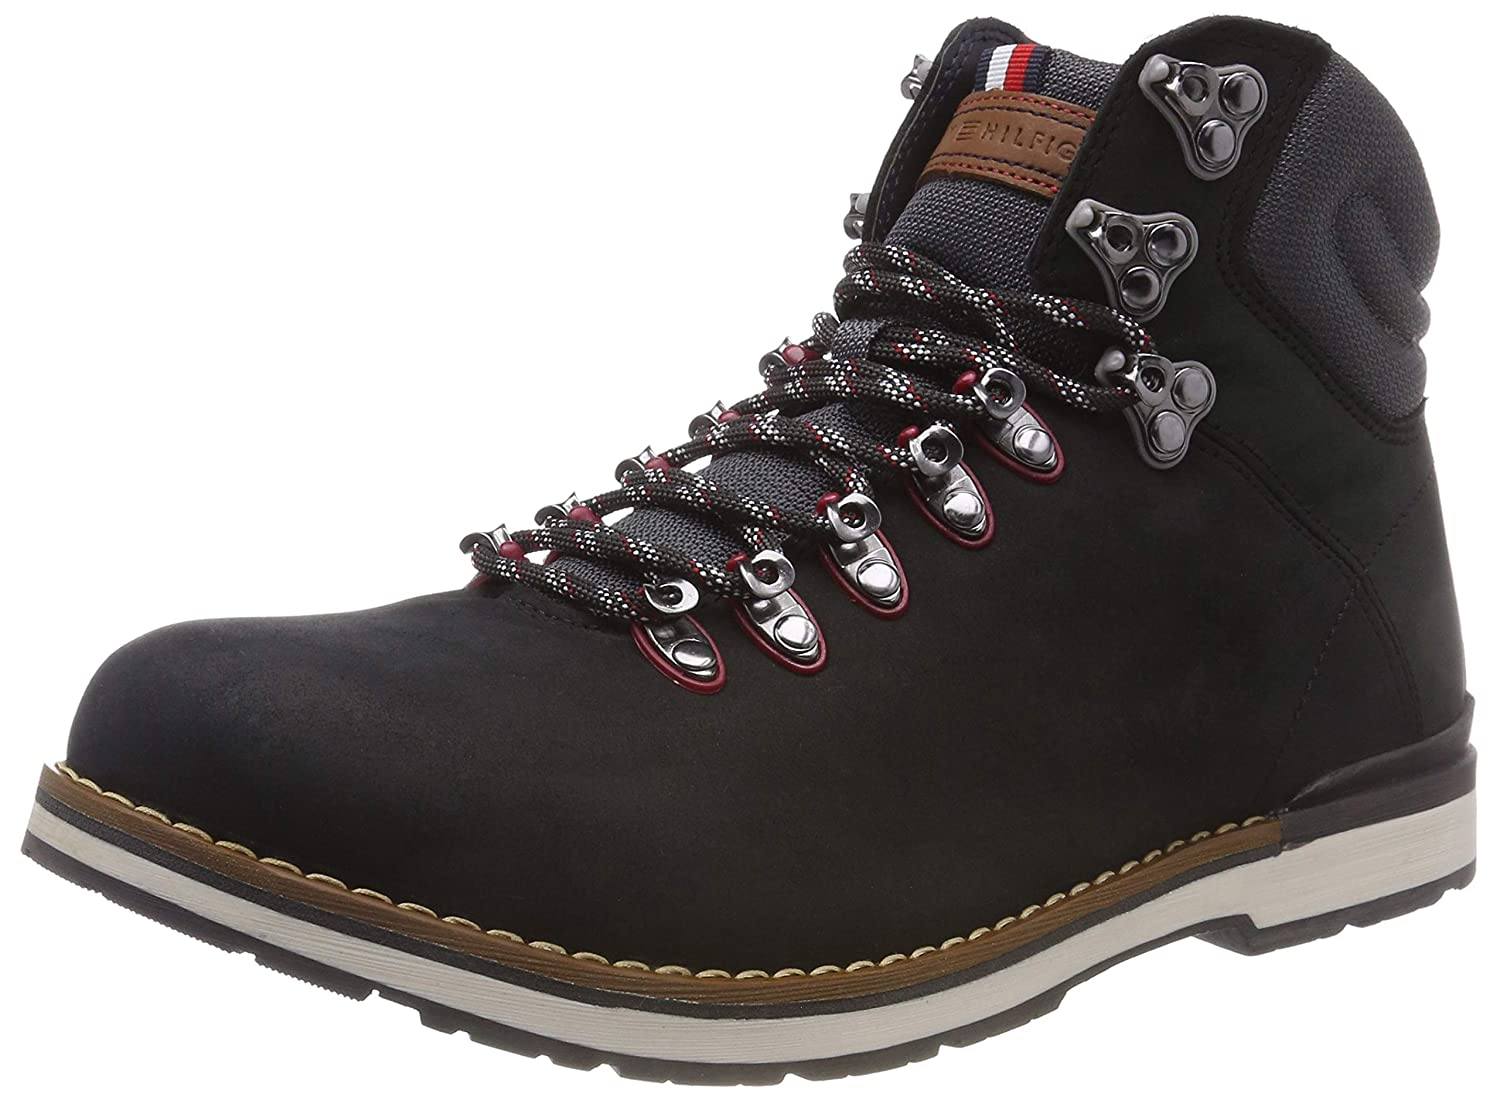 Tommy Hilfiger Outdoor Hiking Detail Boot, Botas Militar para Hombre